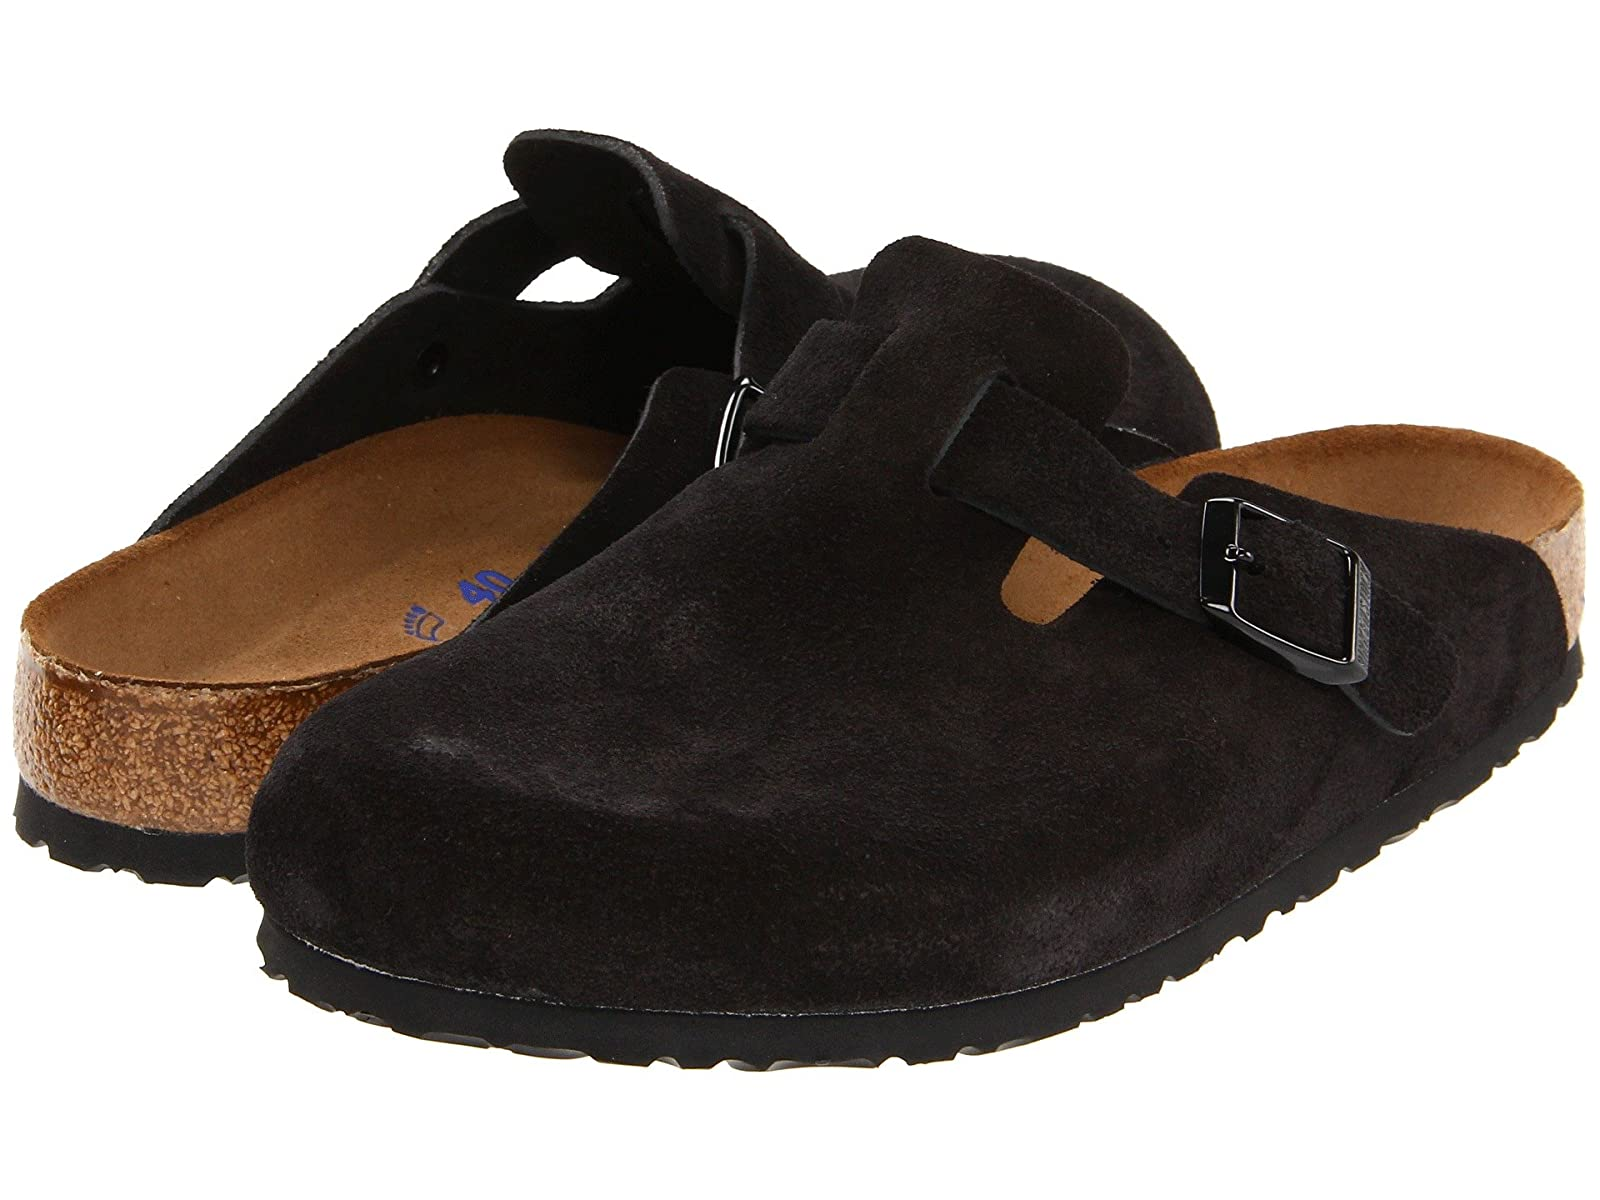 Birkenstock Boston Soft Footbed (Unisex)Economical and quality shoes